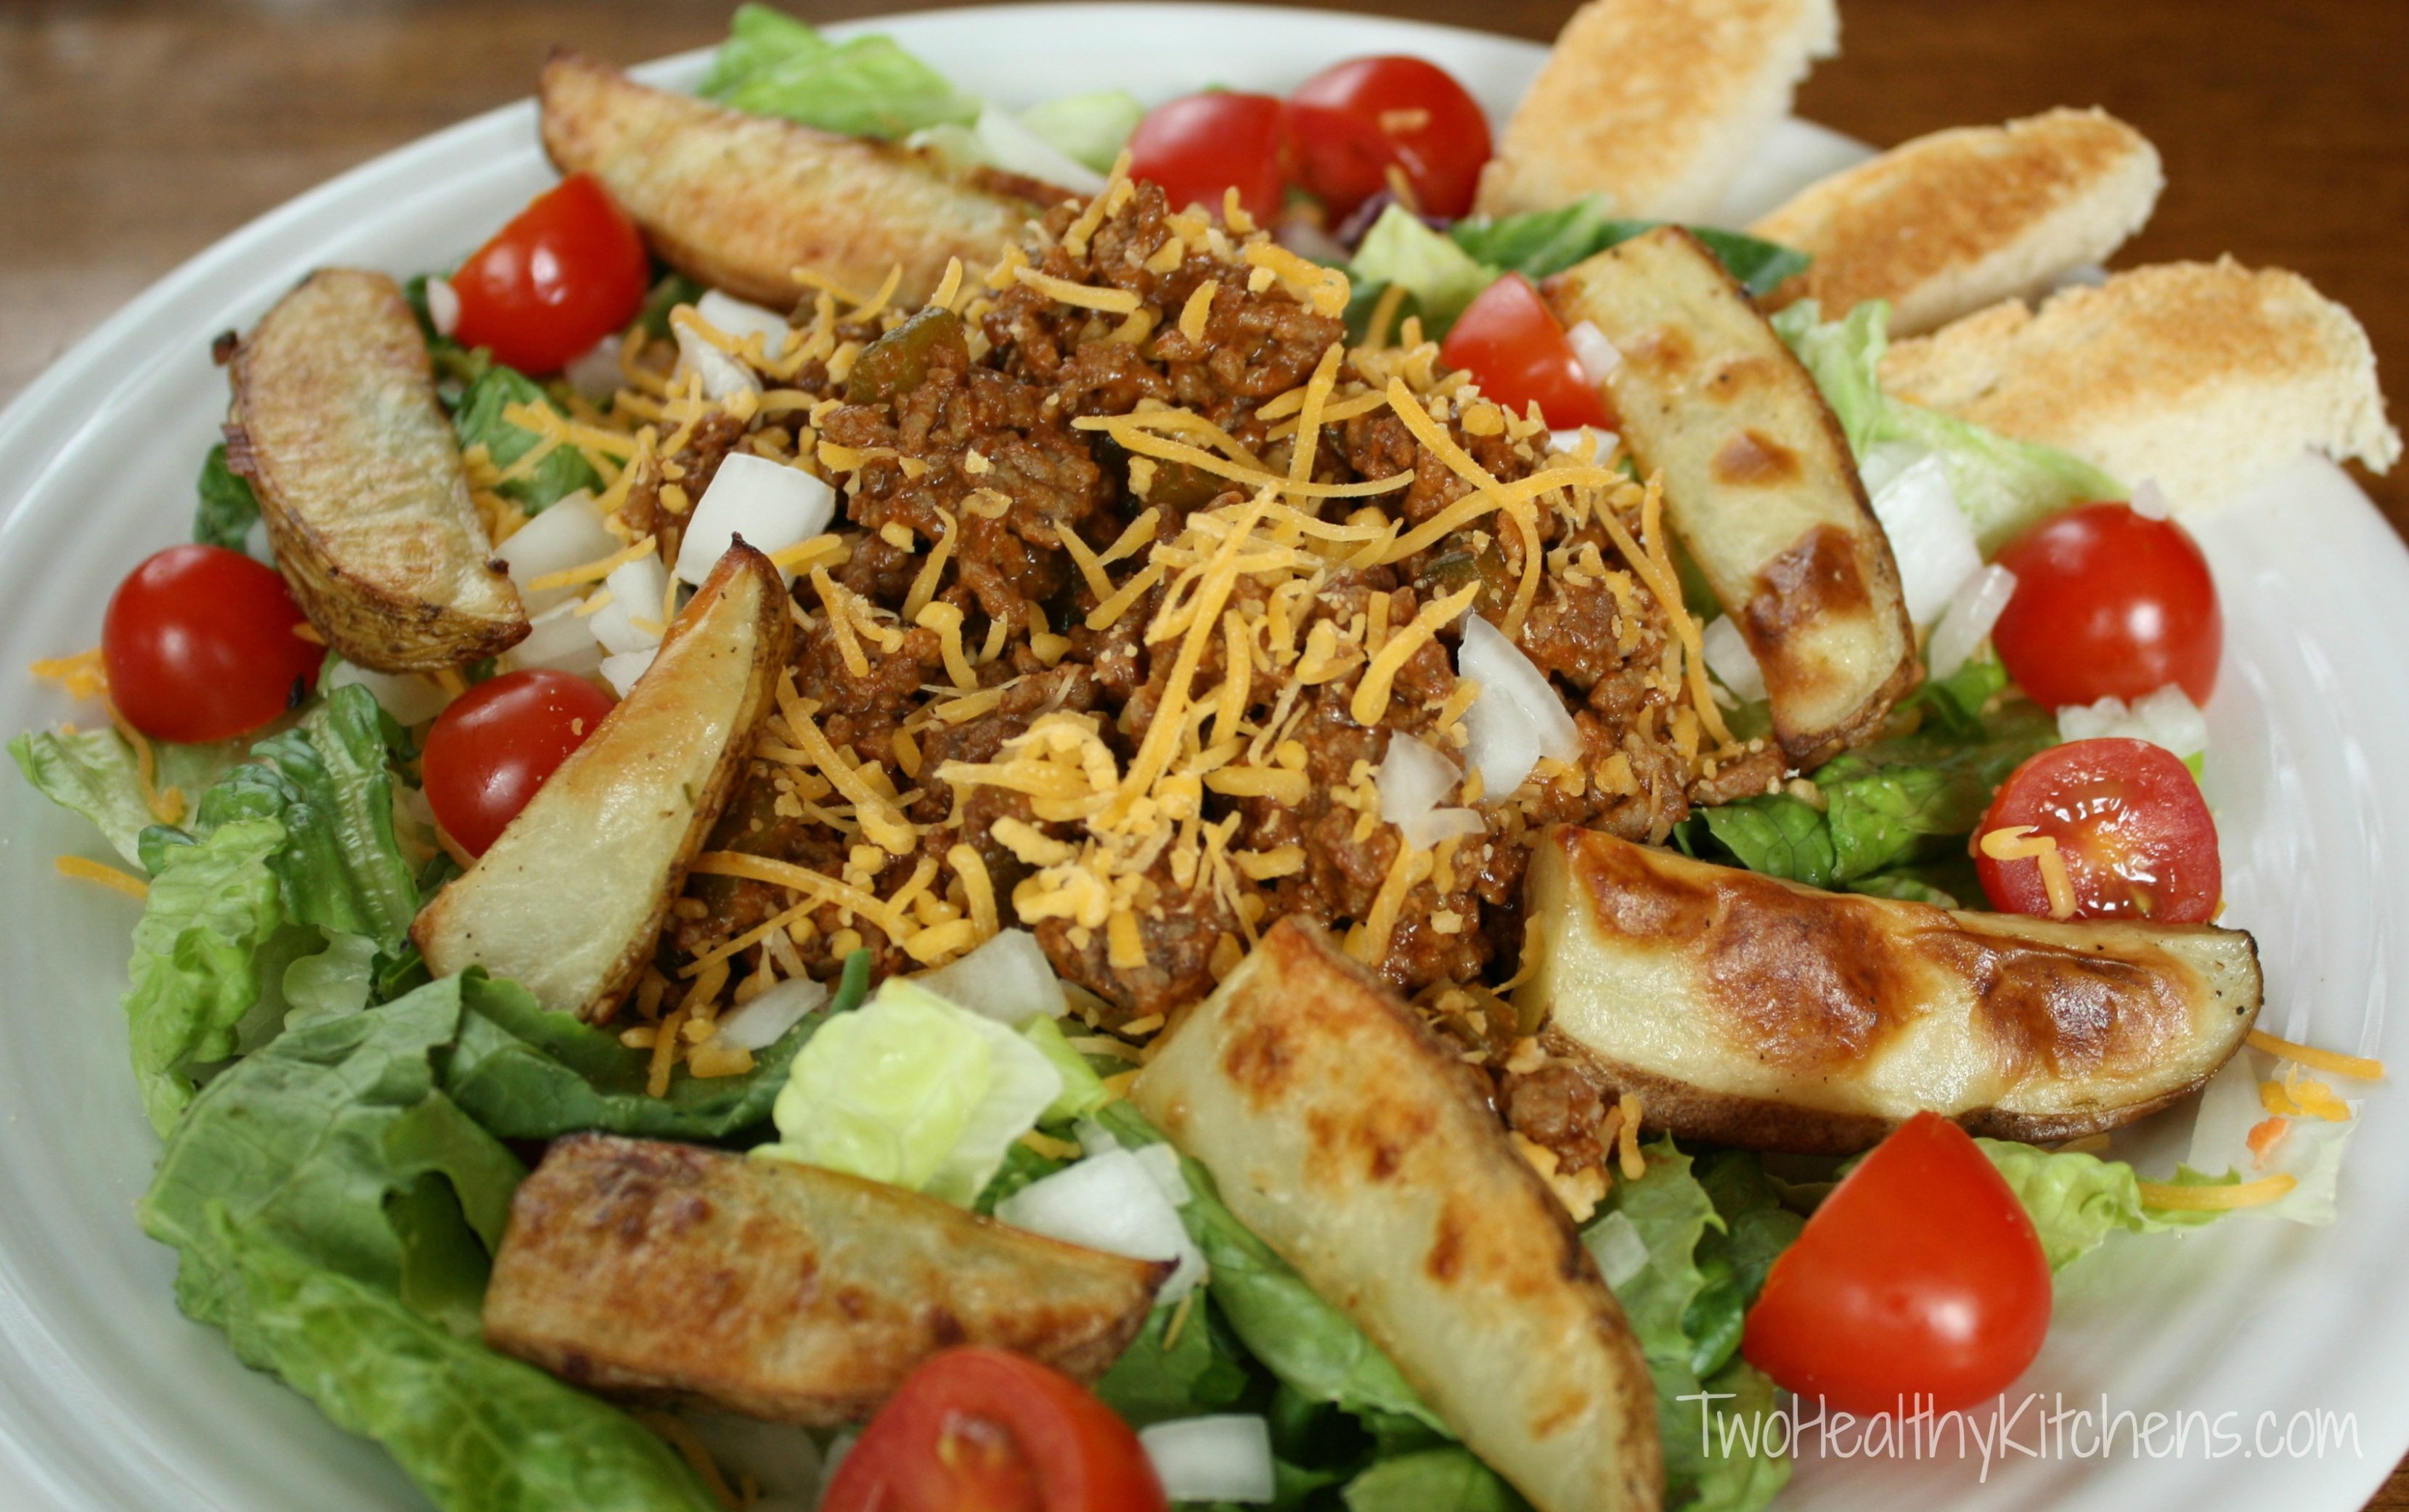 Cheeseburger Salad with Oven-Roasted Fries Recipe {www.TwoHealthyKitchens.com}